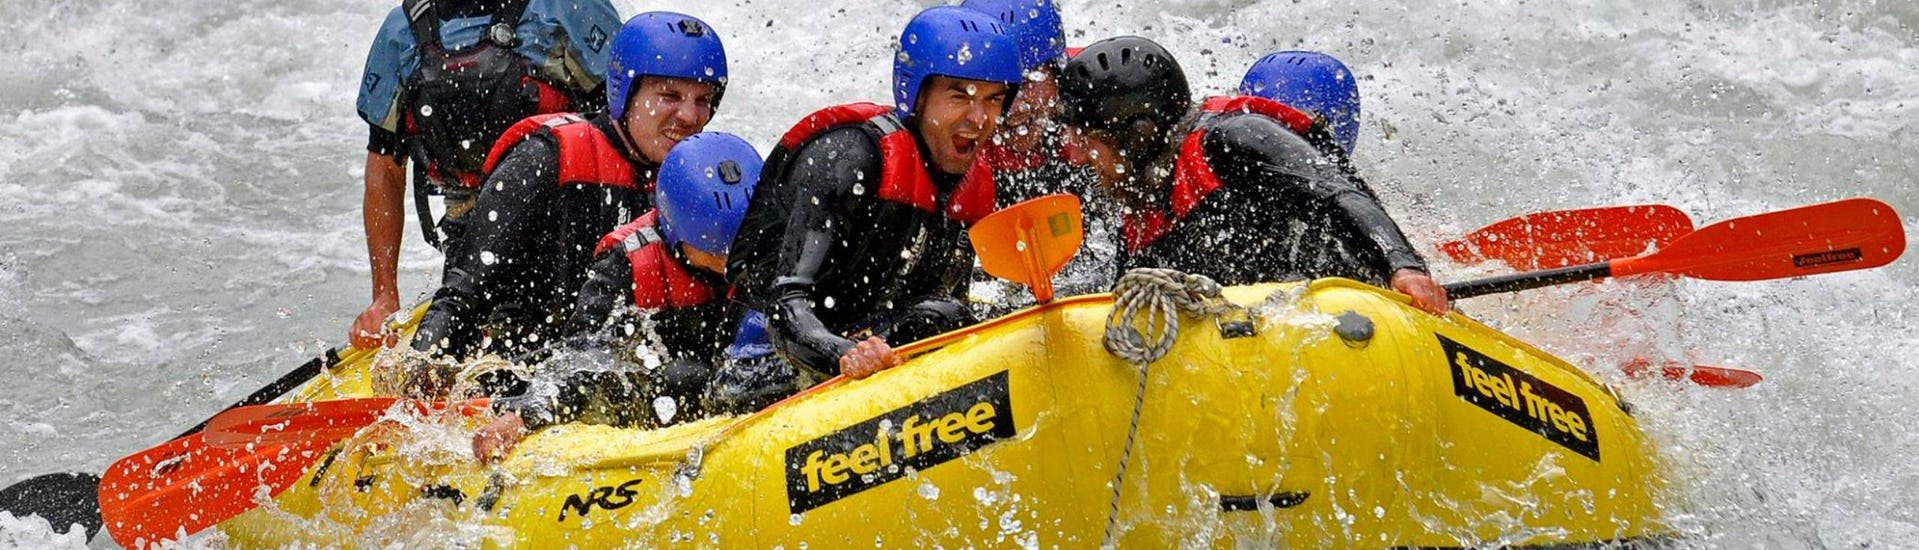 "Rafting in der Imster Schlucht - ""Blue Water Power-Raft"""